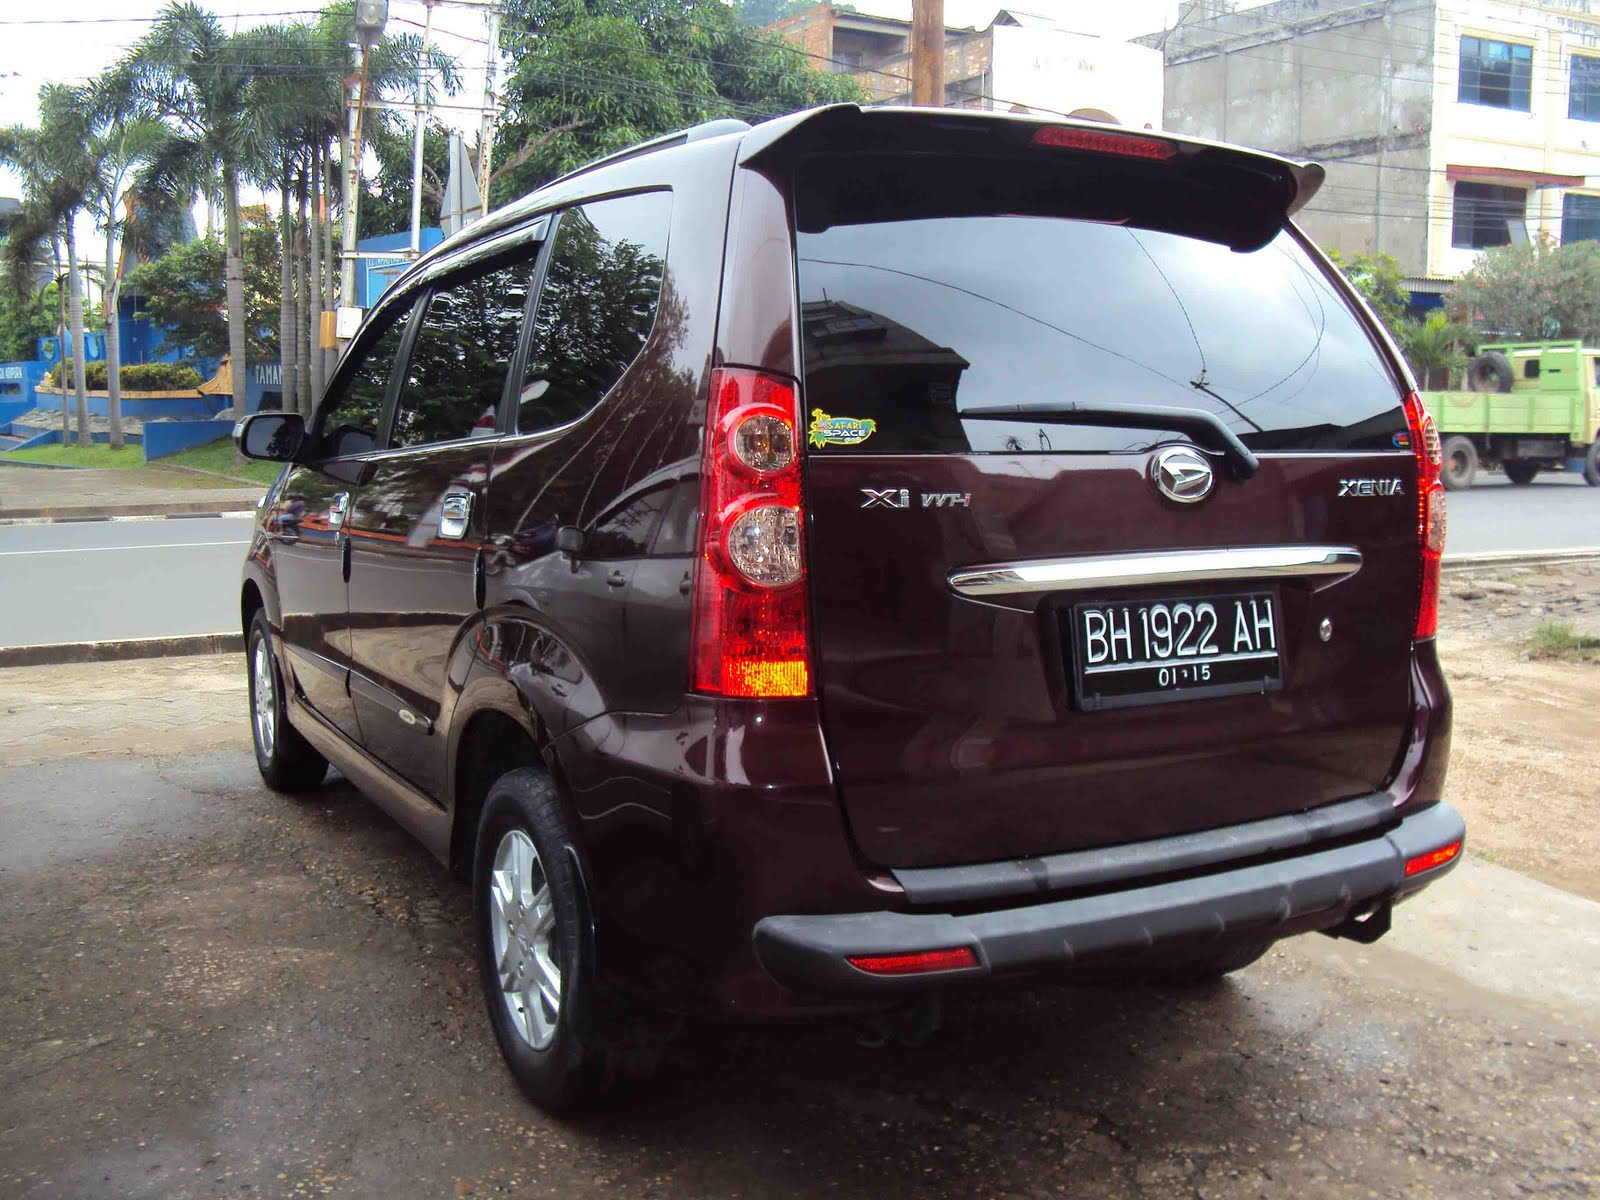 console box grand new avanza g 1.5 mobil bekas jambi xenia xi sporty facelift 2010 manual